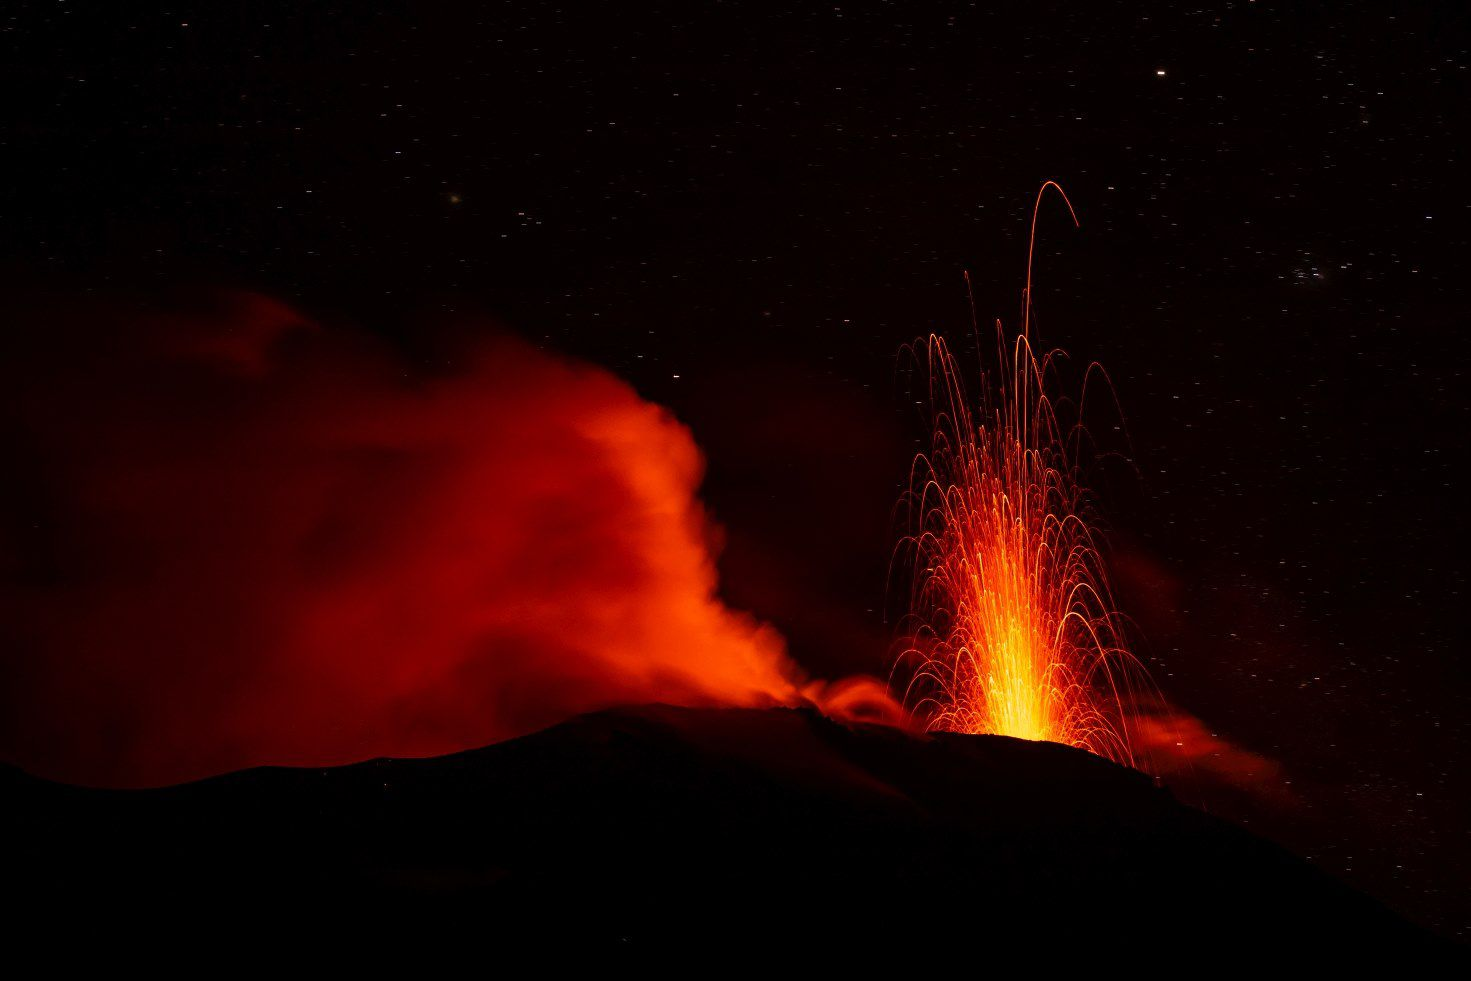 Stromboli - Image illustrating the FB Banner of the Stromboli visitor center - 21.02.2020 / photo Fredy Granacher